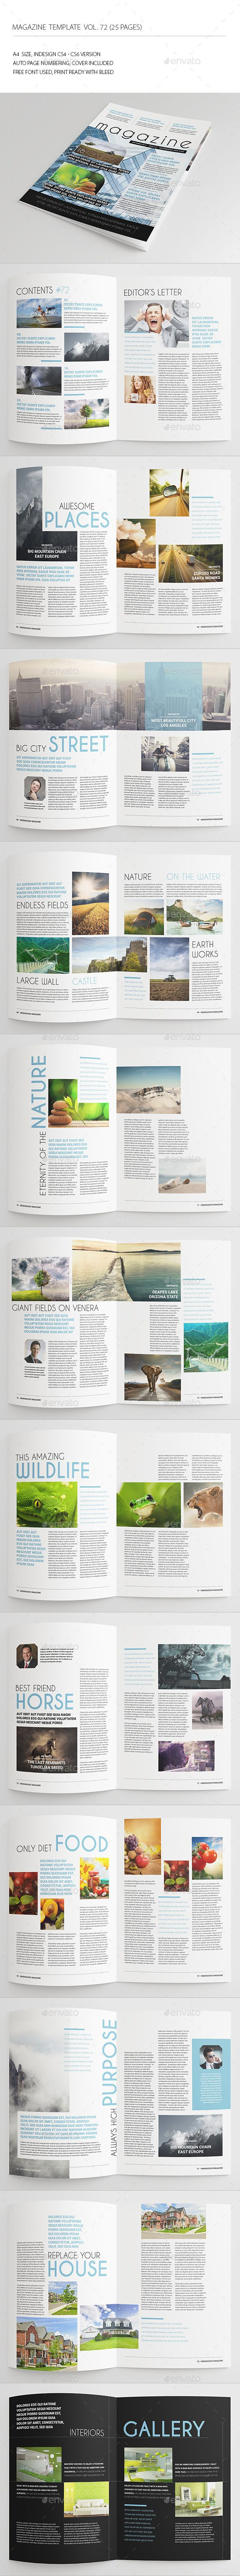 25 Pages Universal Magazine Vol72 by BeCreative 25 Pages Universal